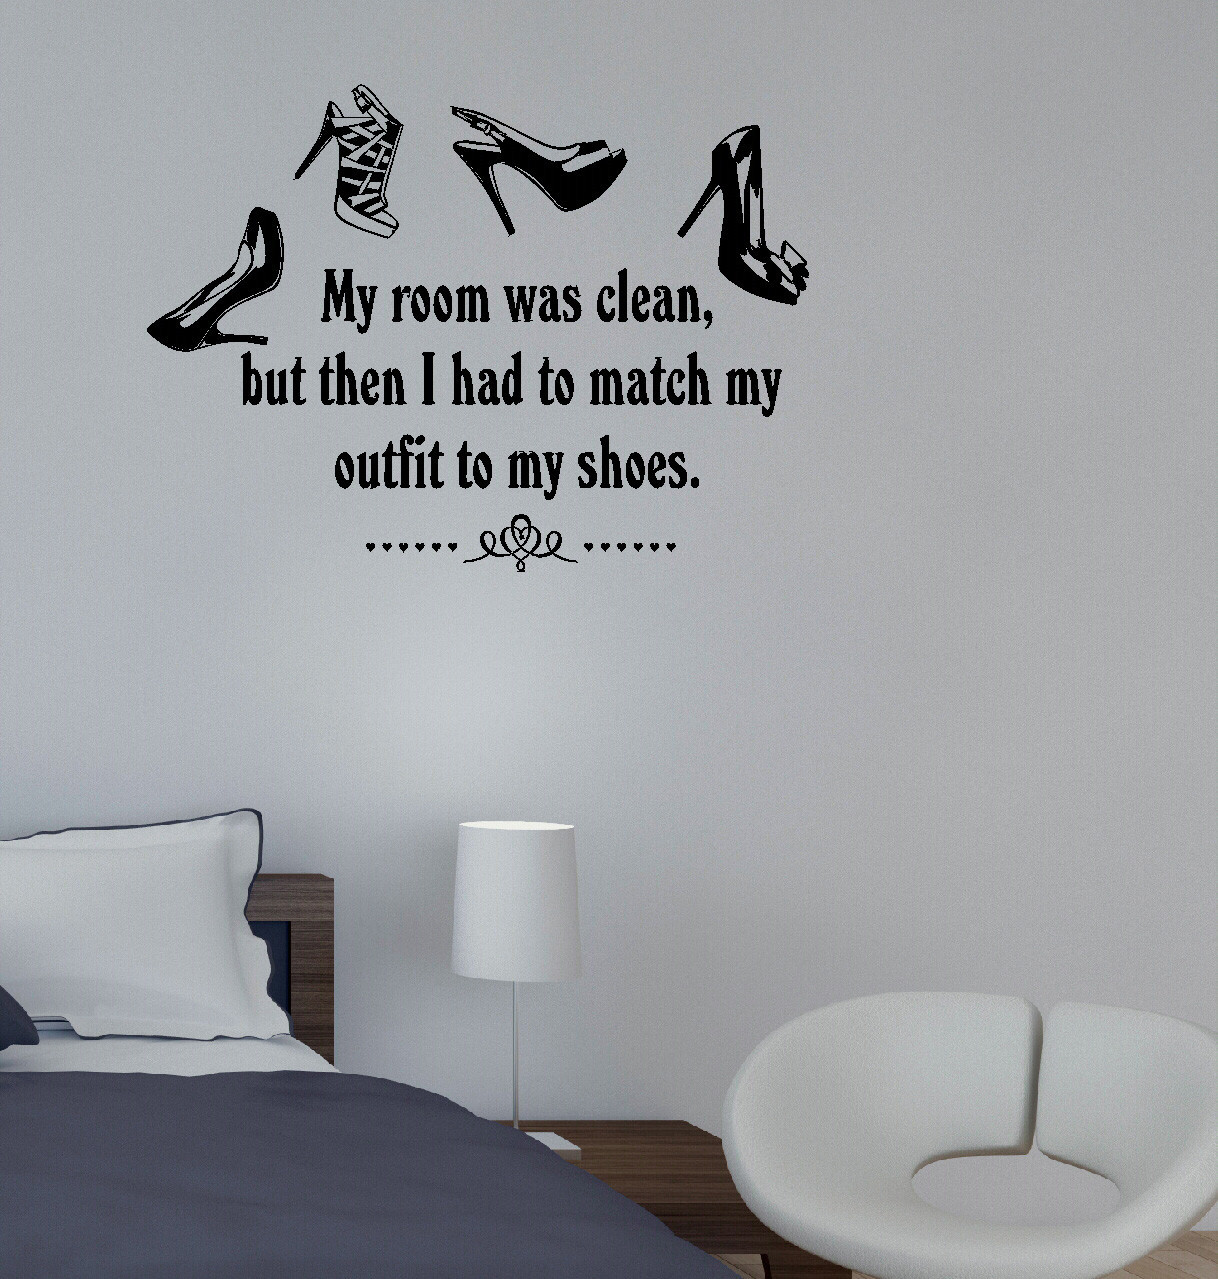 Funny Bedroom Quotes Bedroom Colors For Man Two Bedroom Apartment Design Lime Green Bedrooms For Girls: Match My Outfit To My Shoes, Room Mess